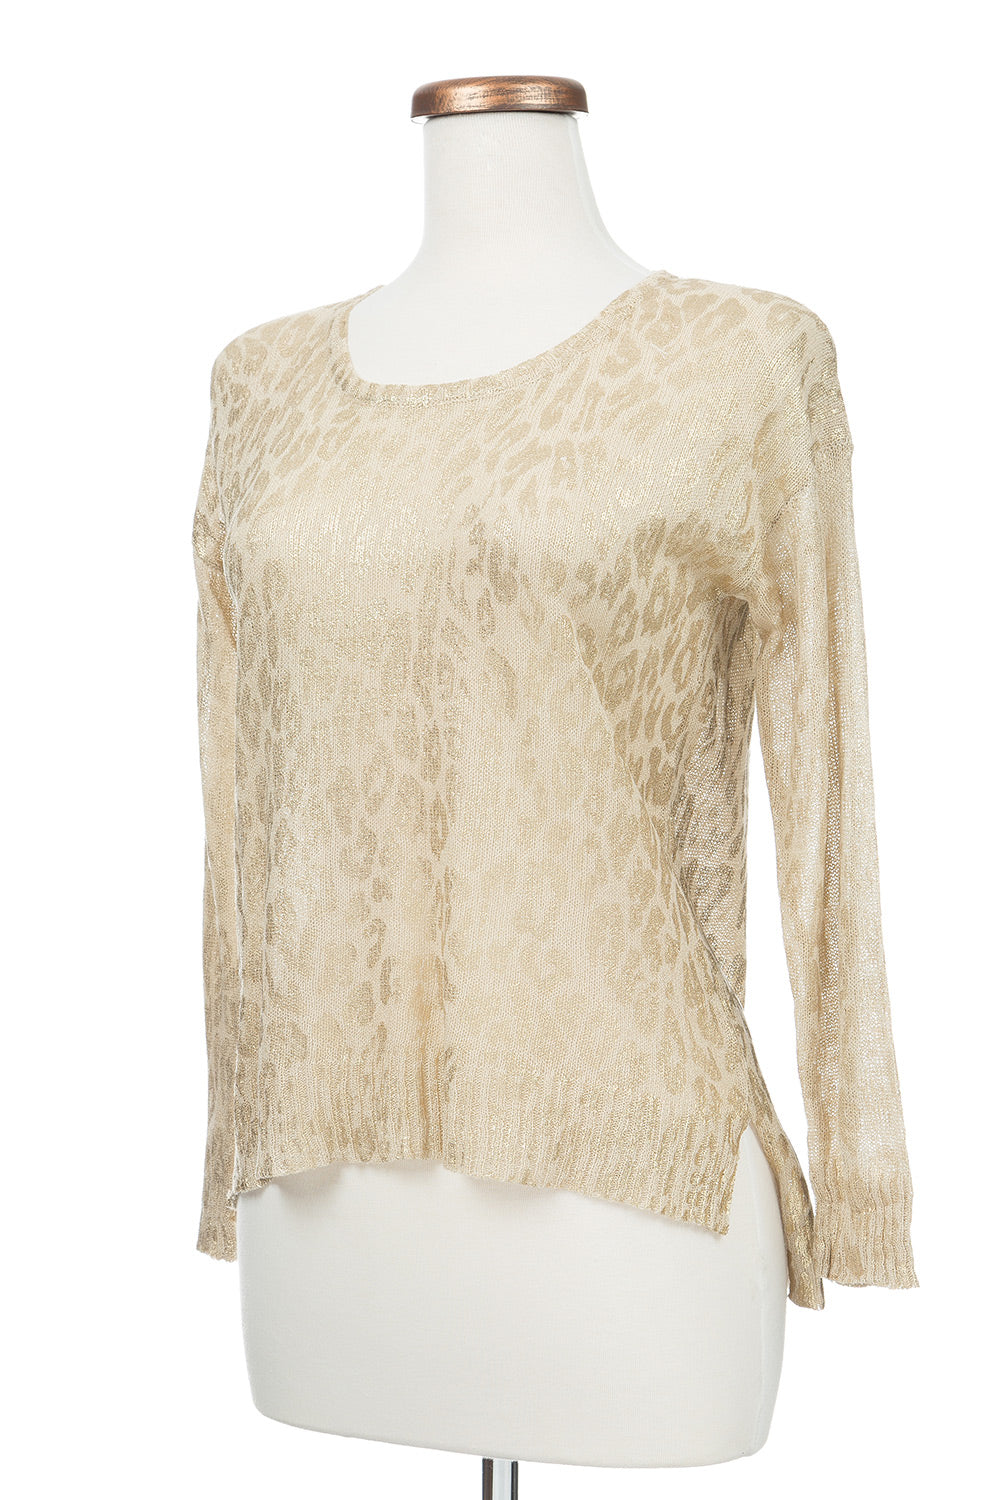 Type 3 Leopard Luxe Top in Gold